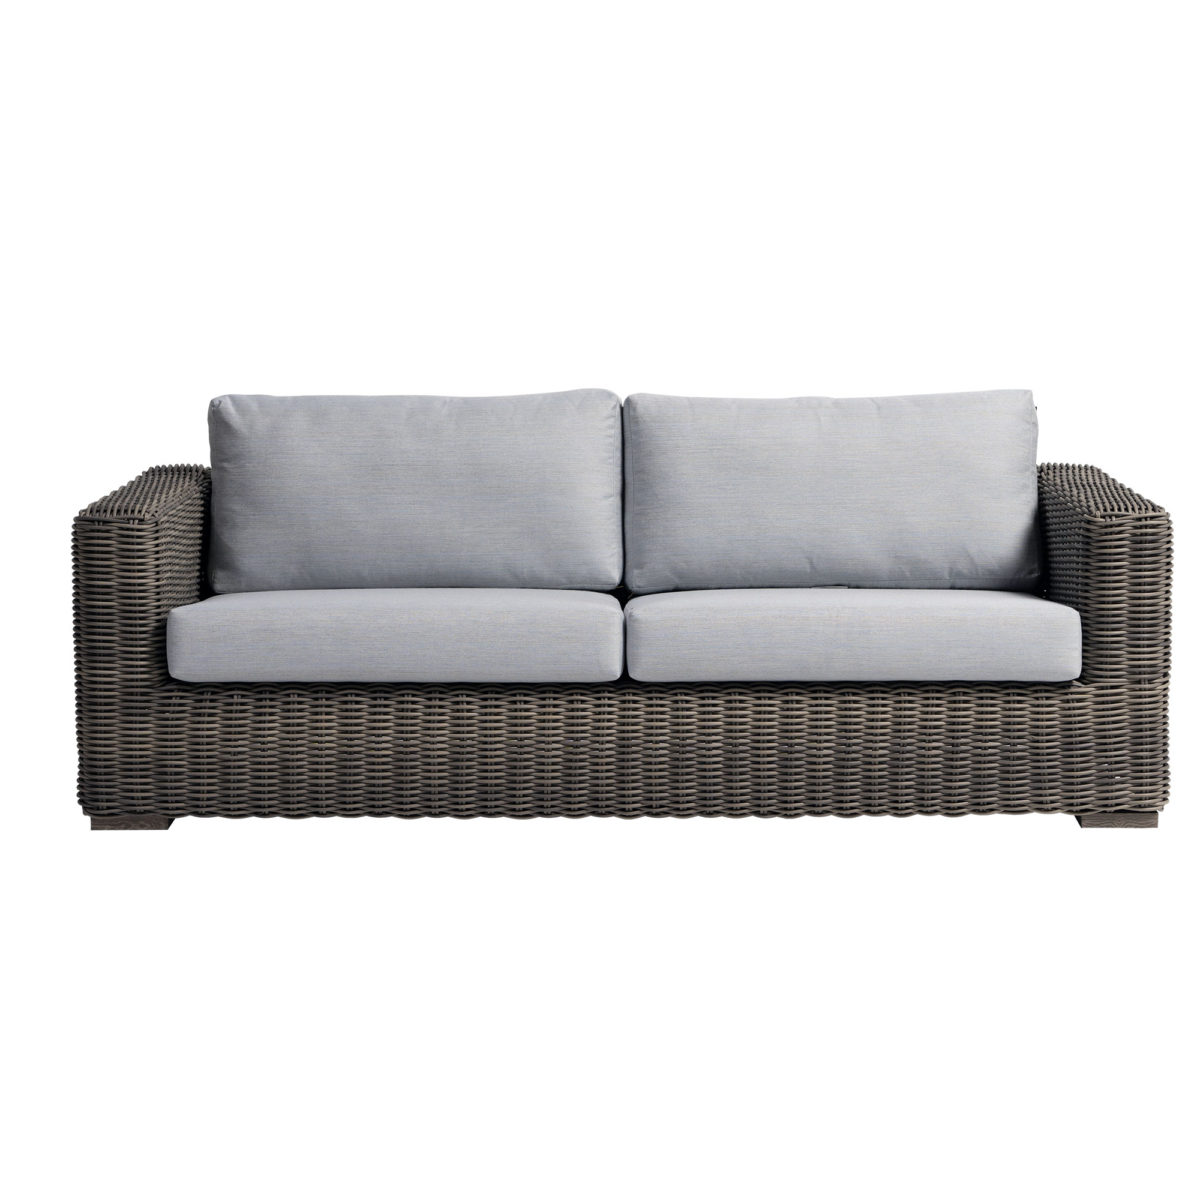 The Cubo sofa ratana in creamy oak wicker with taupe colored cushions.